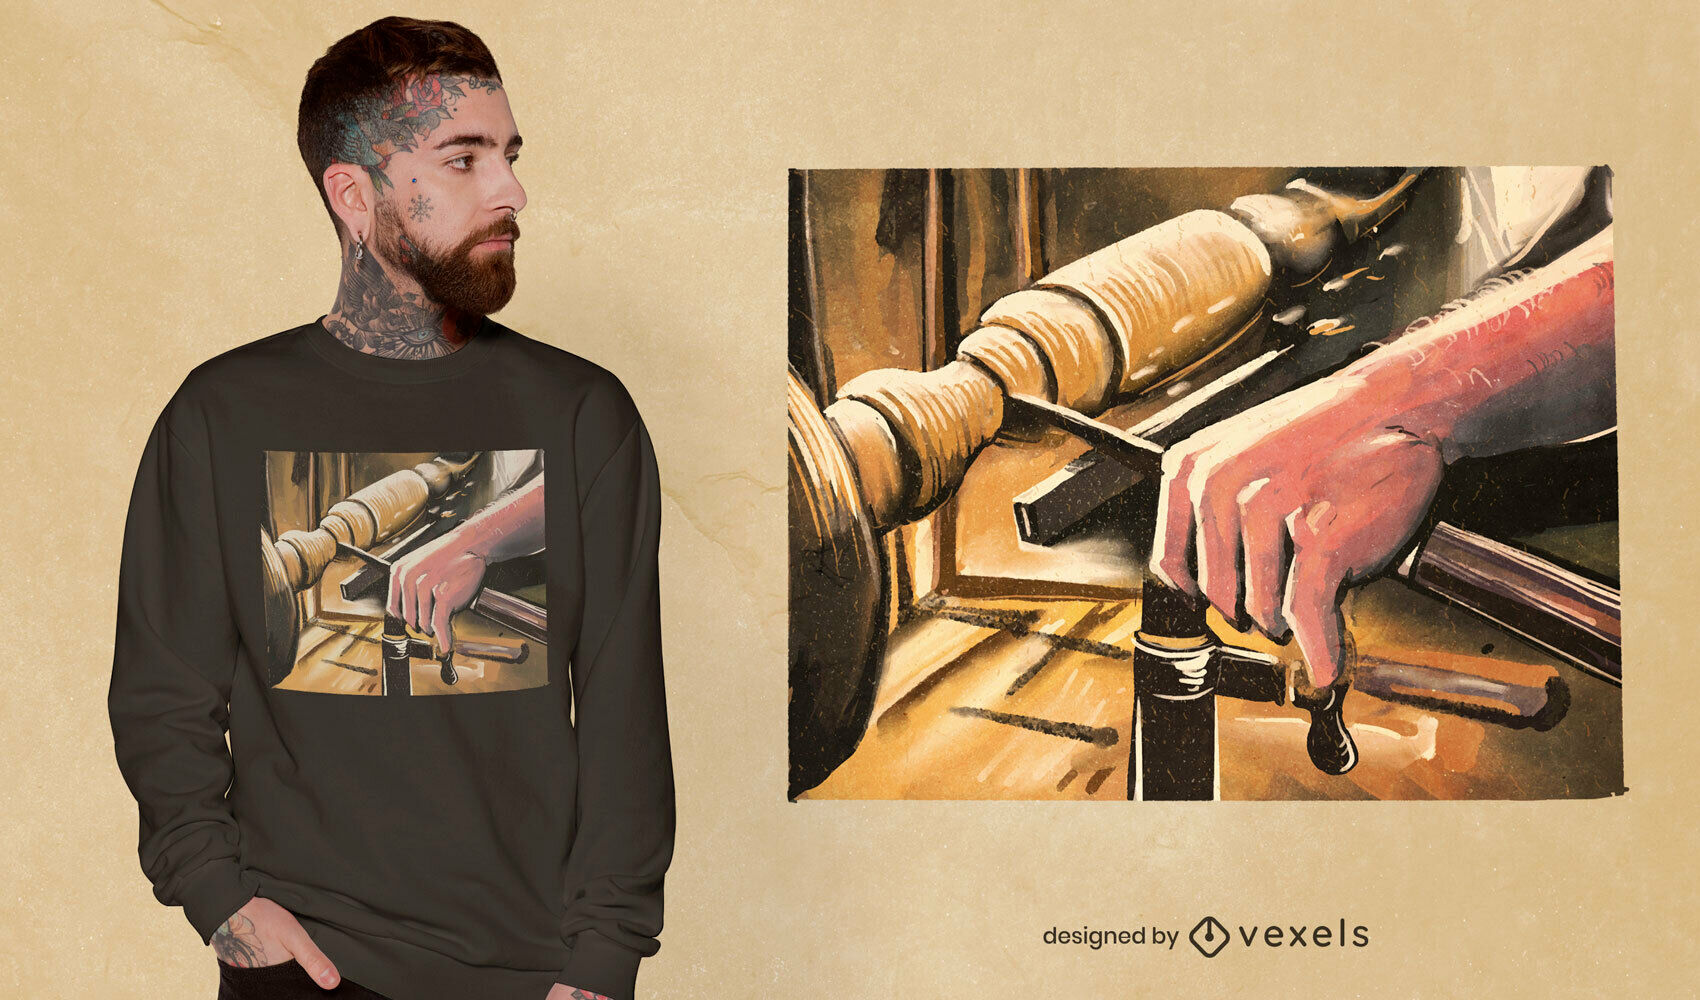 Wood turner realistic painting t-shirt psd